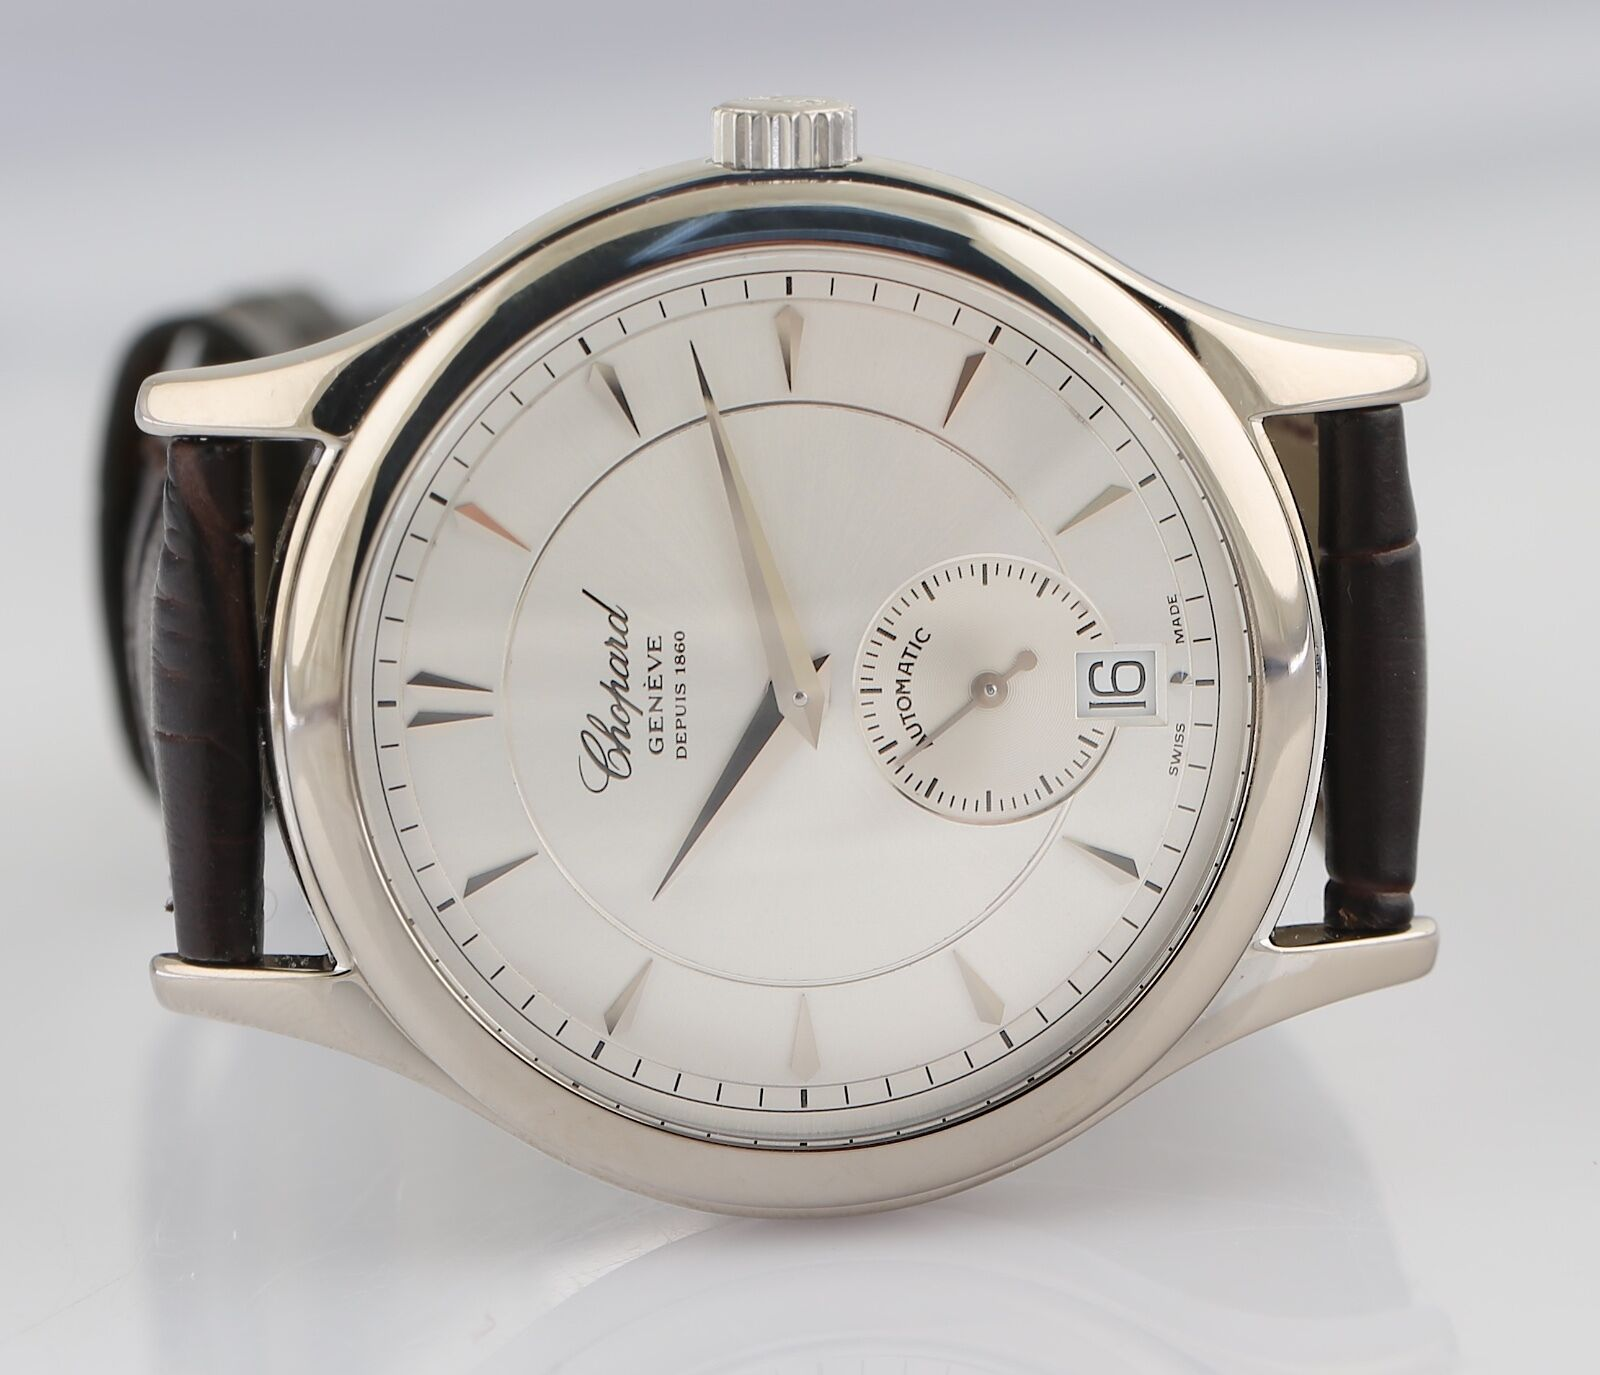 Chopard LUC 16/1860 Limited Edition 18k White Gold Automatic Wristwatch - watch picture 1